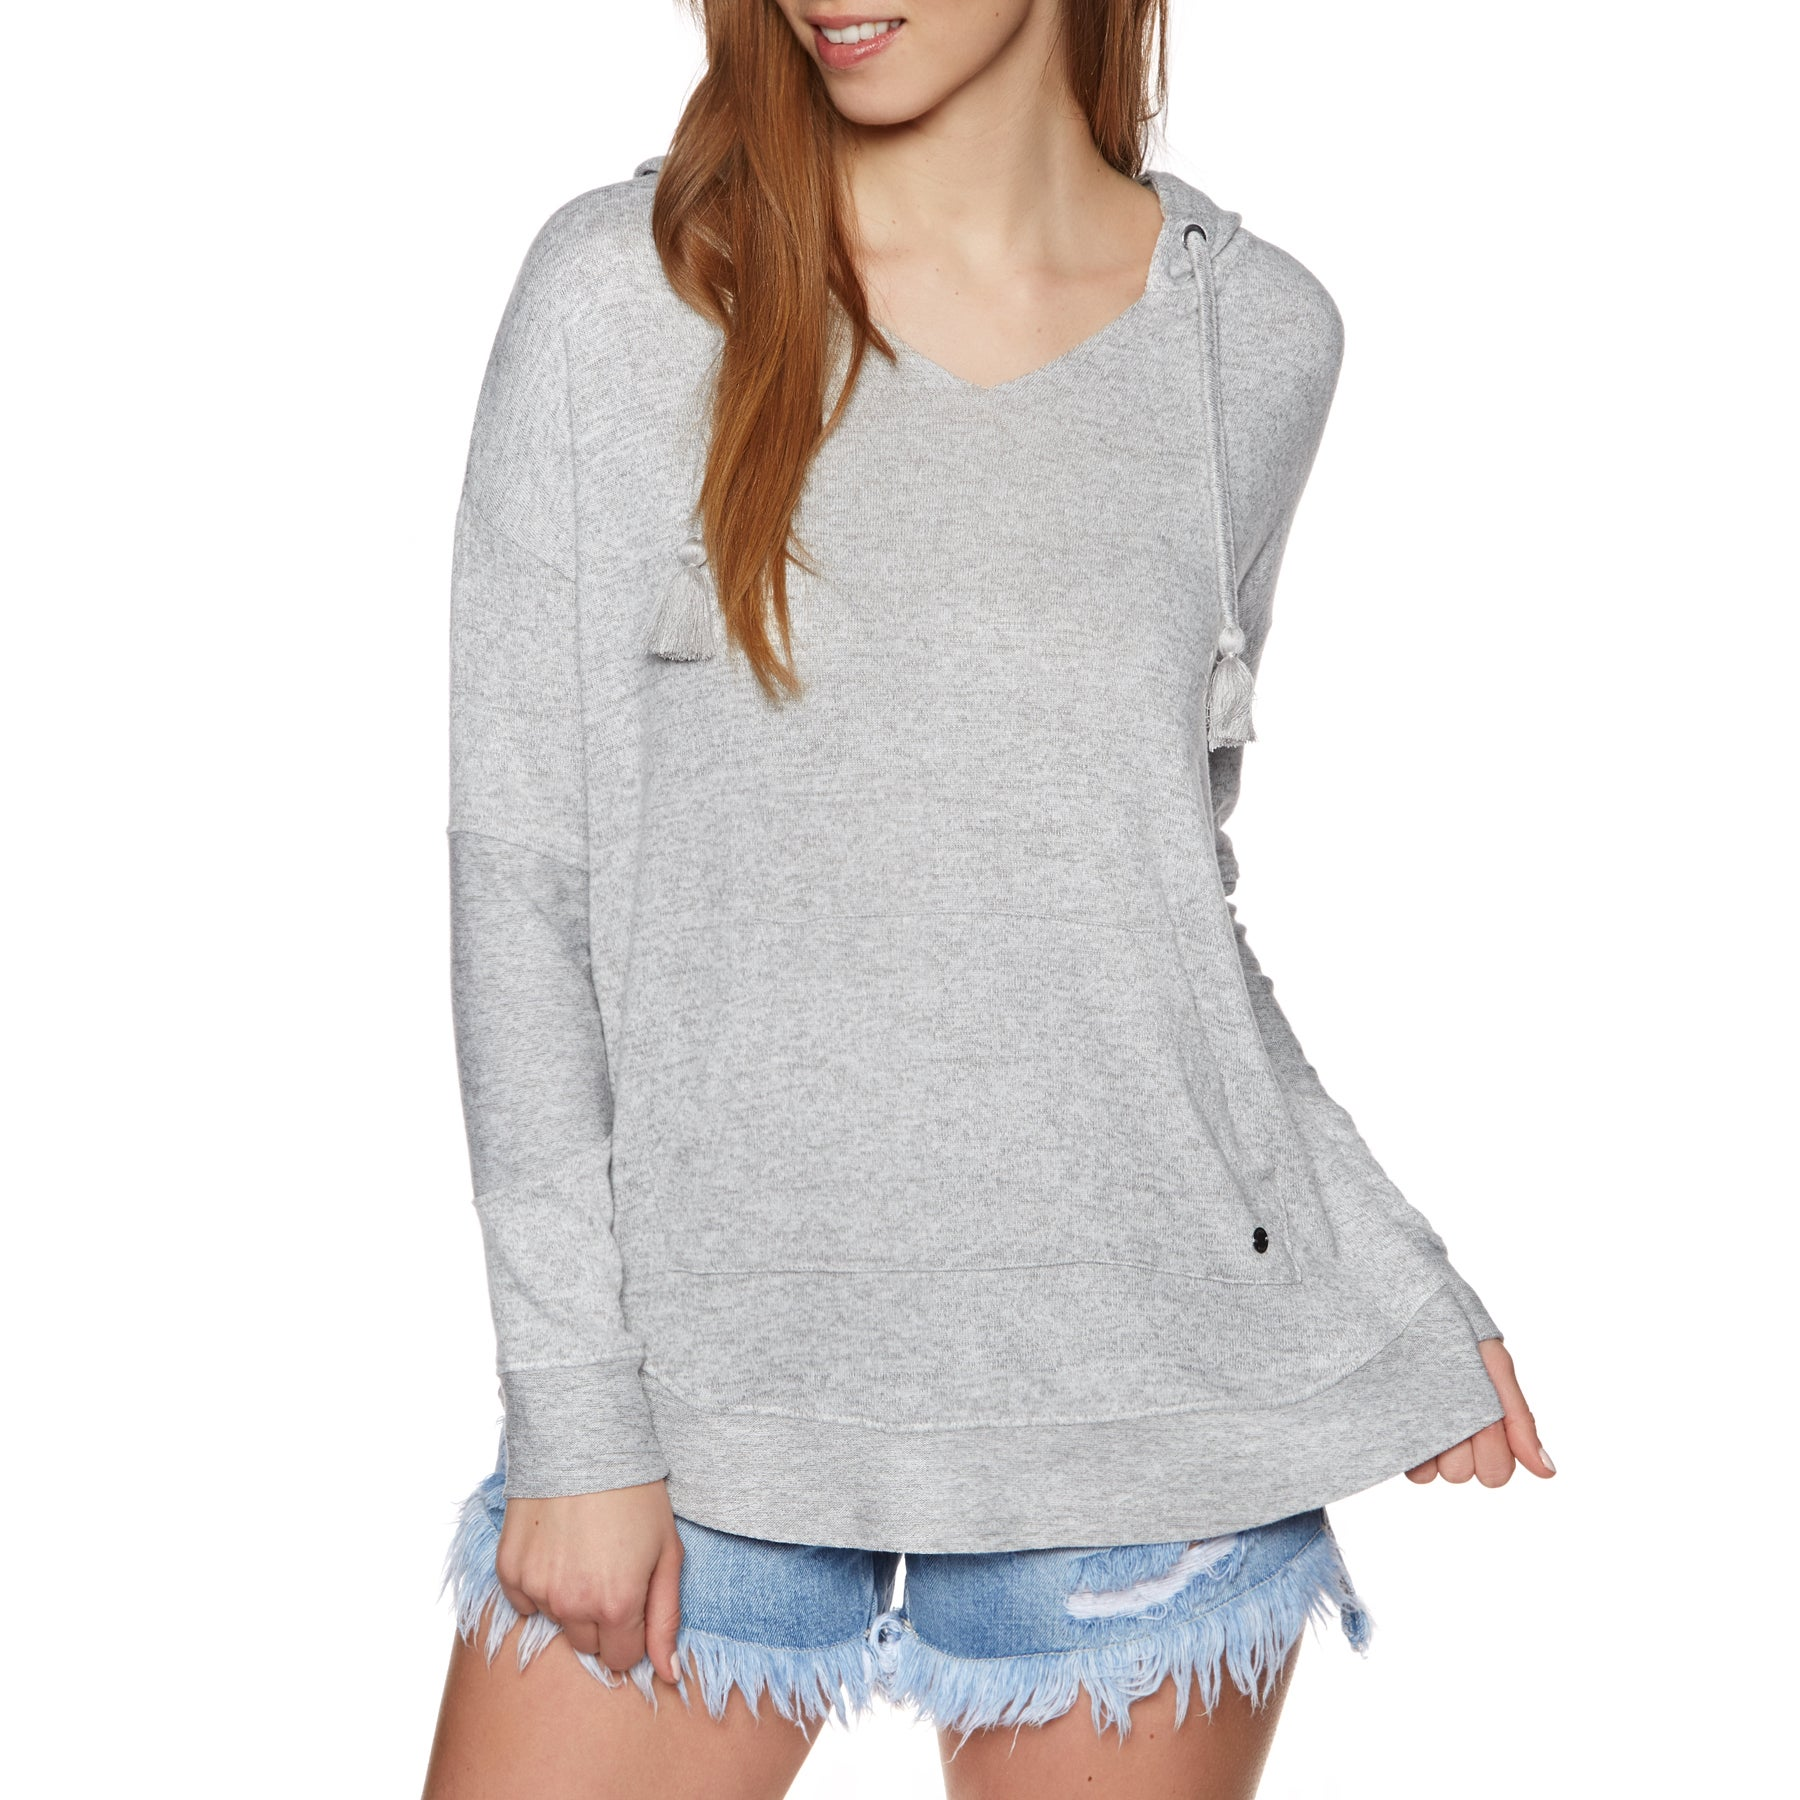 Roxy Cozychill Womens Pullover Hoody - Heritage Heather